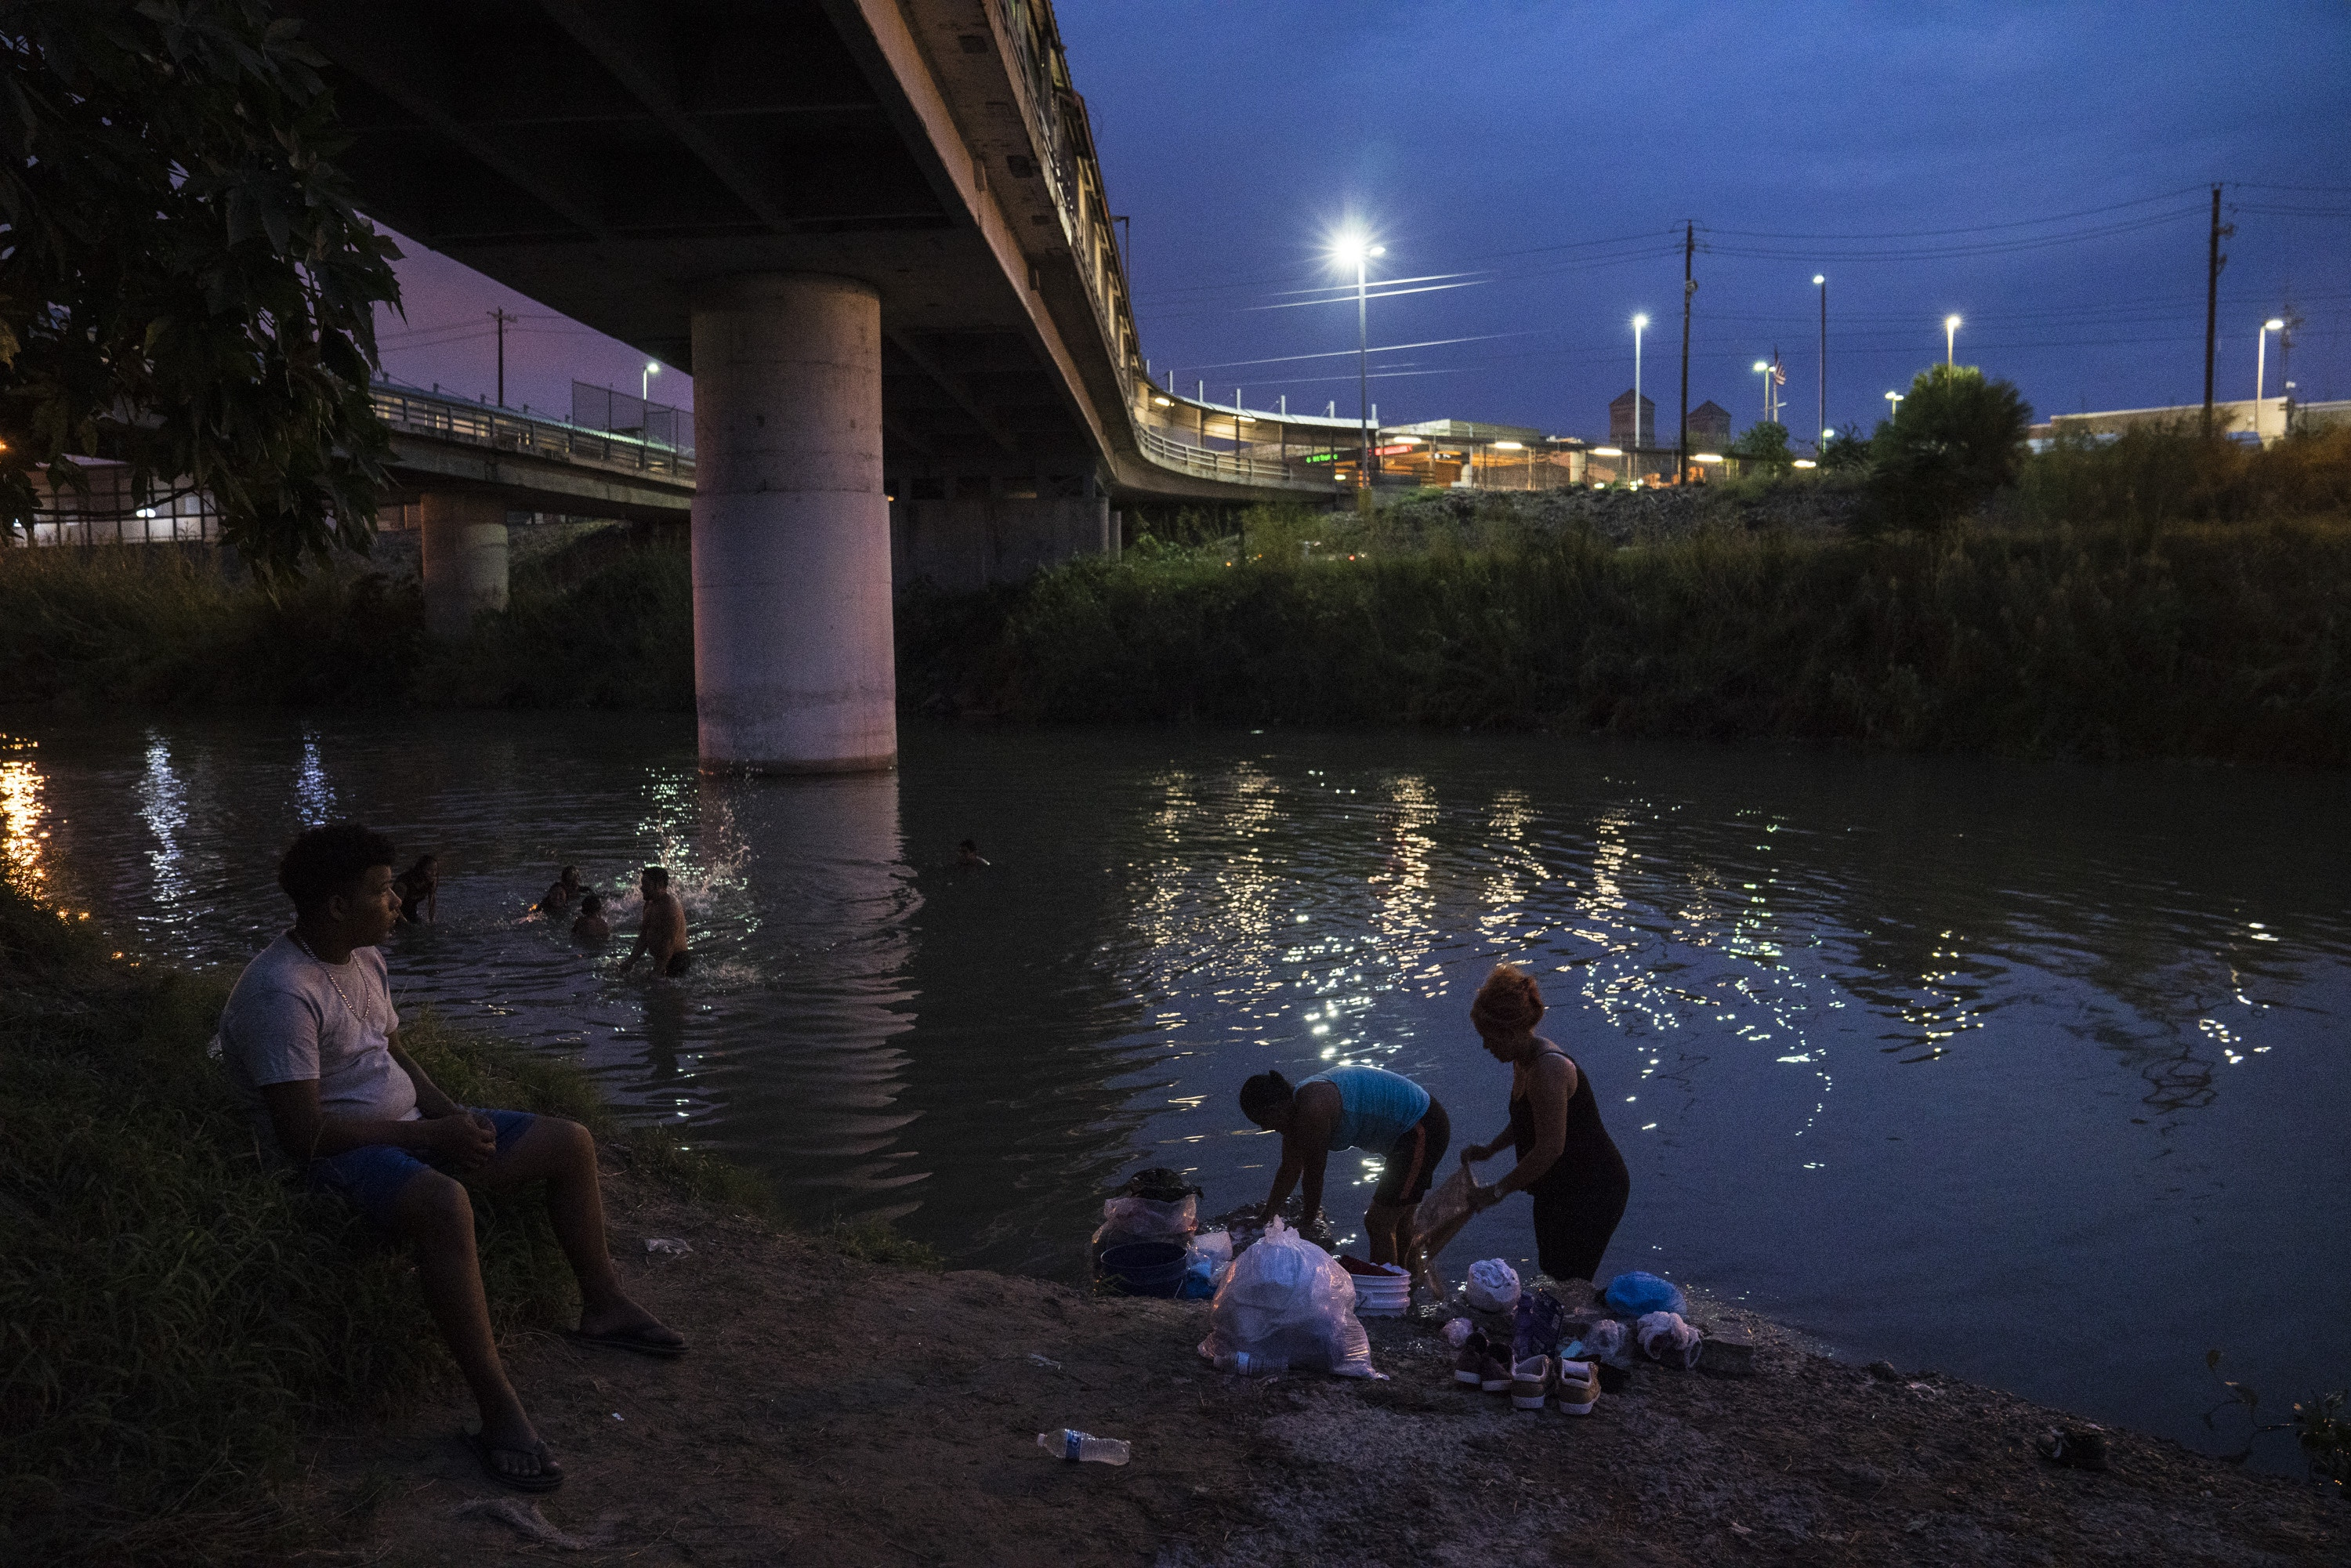 The Gateway International Bridge as seen on Oct. 21, 2019 in Matamoros, Mexico. Many of the asylum seekers that live in the nearby encampment shower and wash their clothes in the Rio Grande.Verónica G. Cárdenas for The Intercept